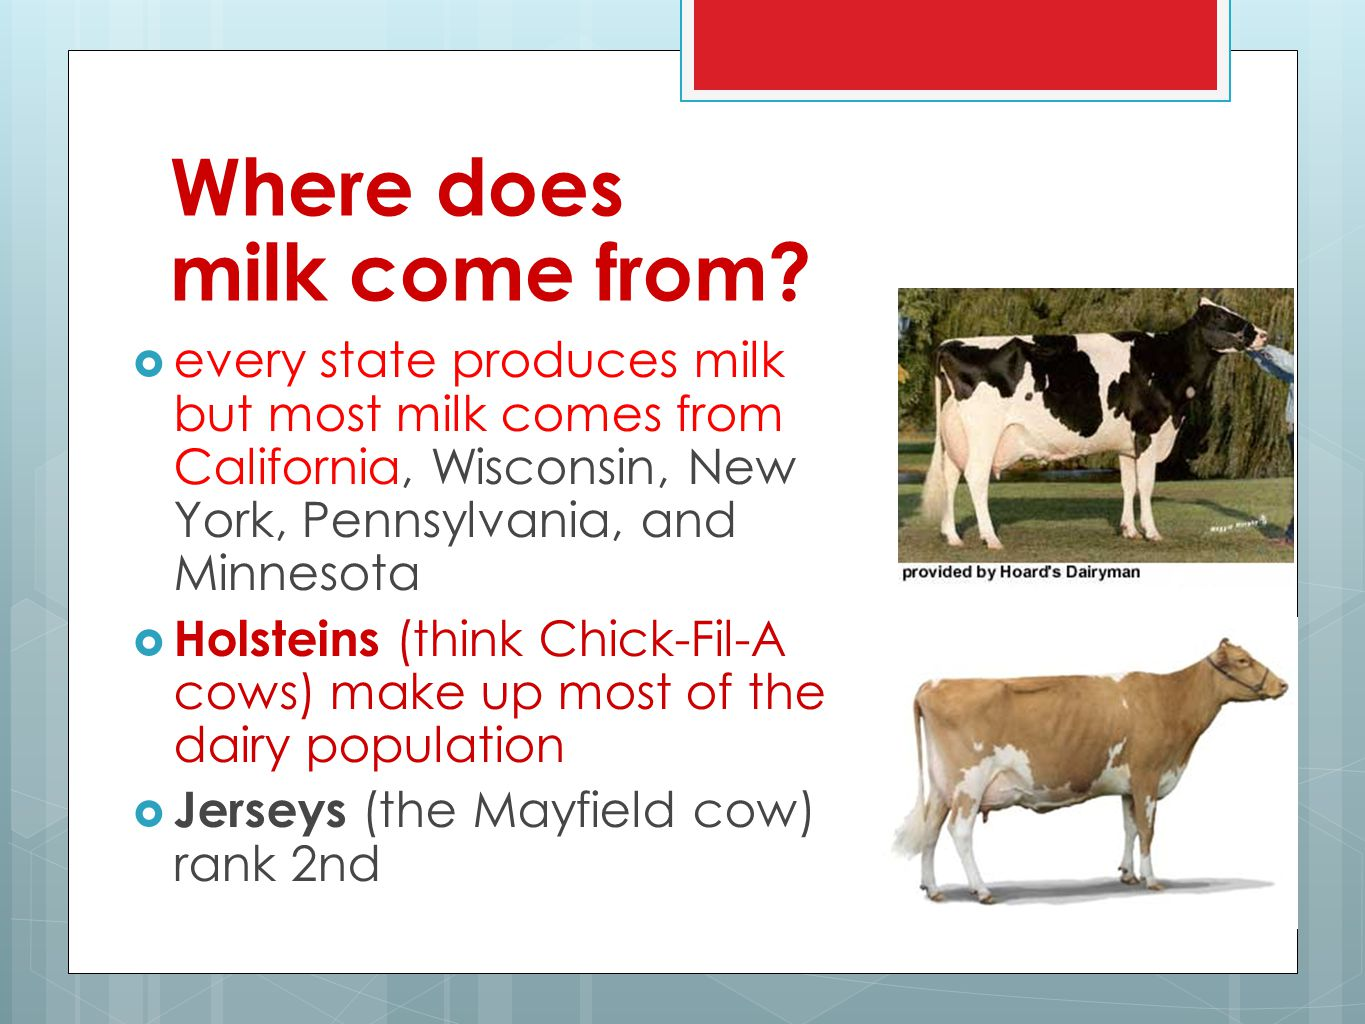 the dairy industry an introduction to the animal industry ppt video online download. Black Bedroom Furniture Sets. Home Design Ideas